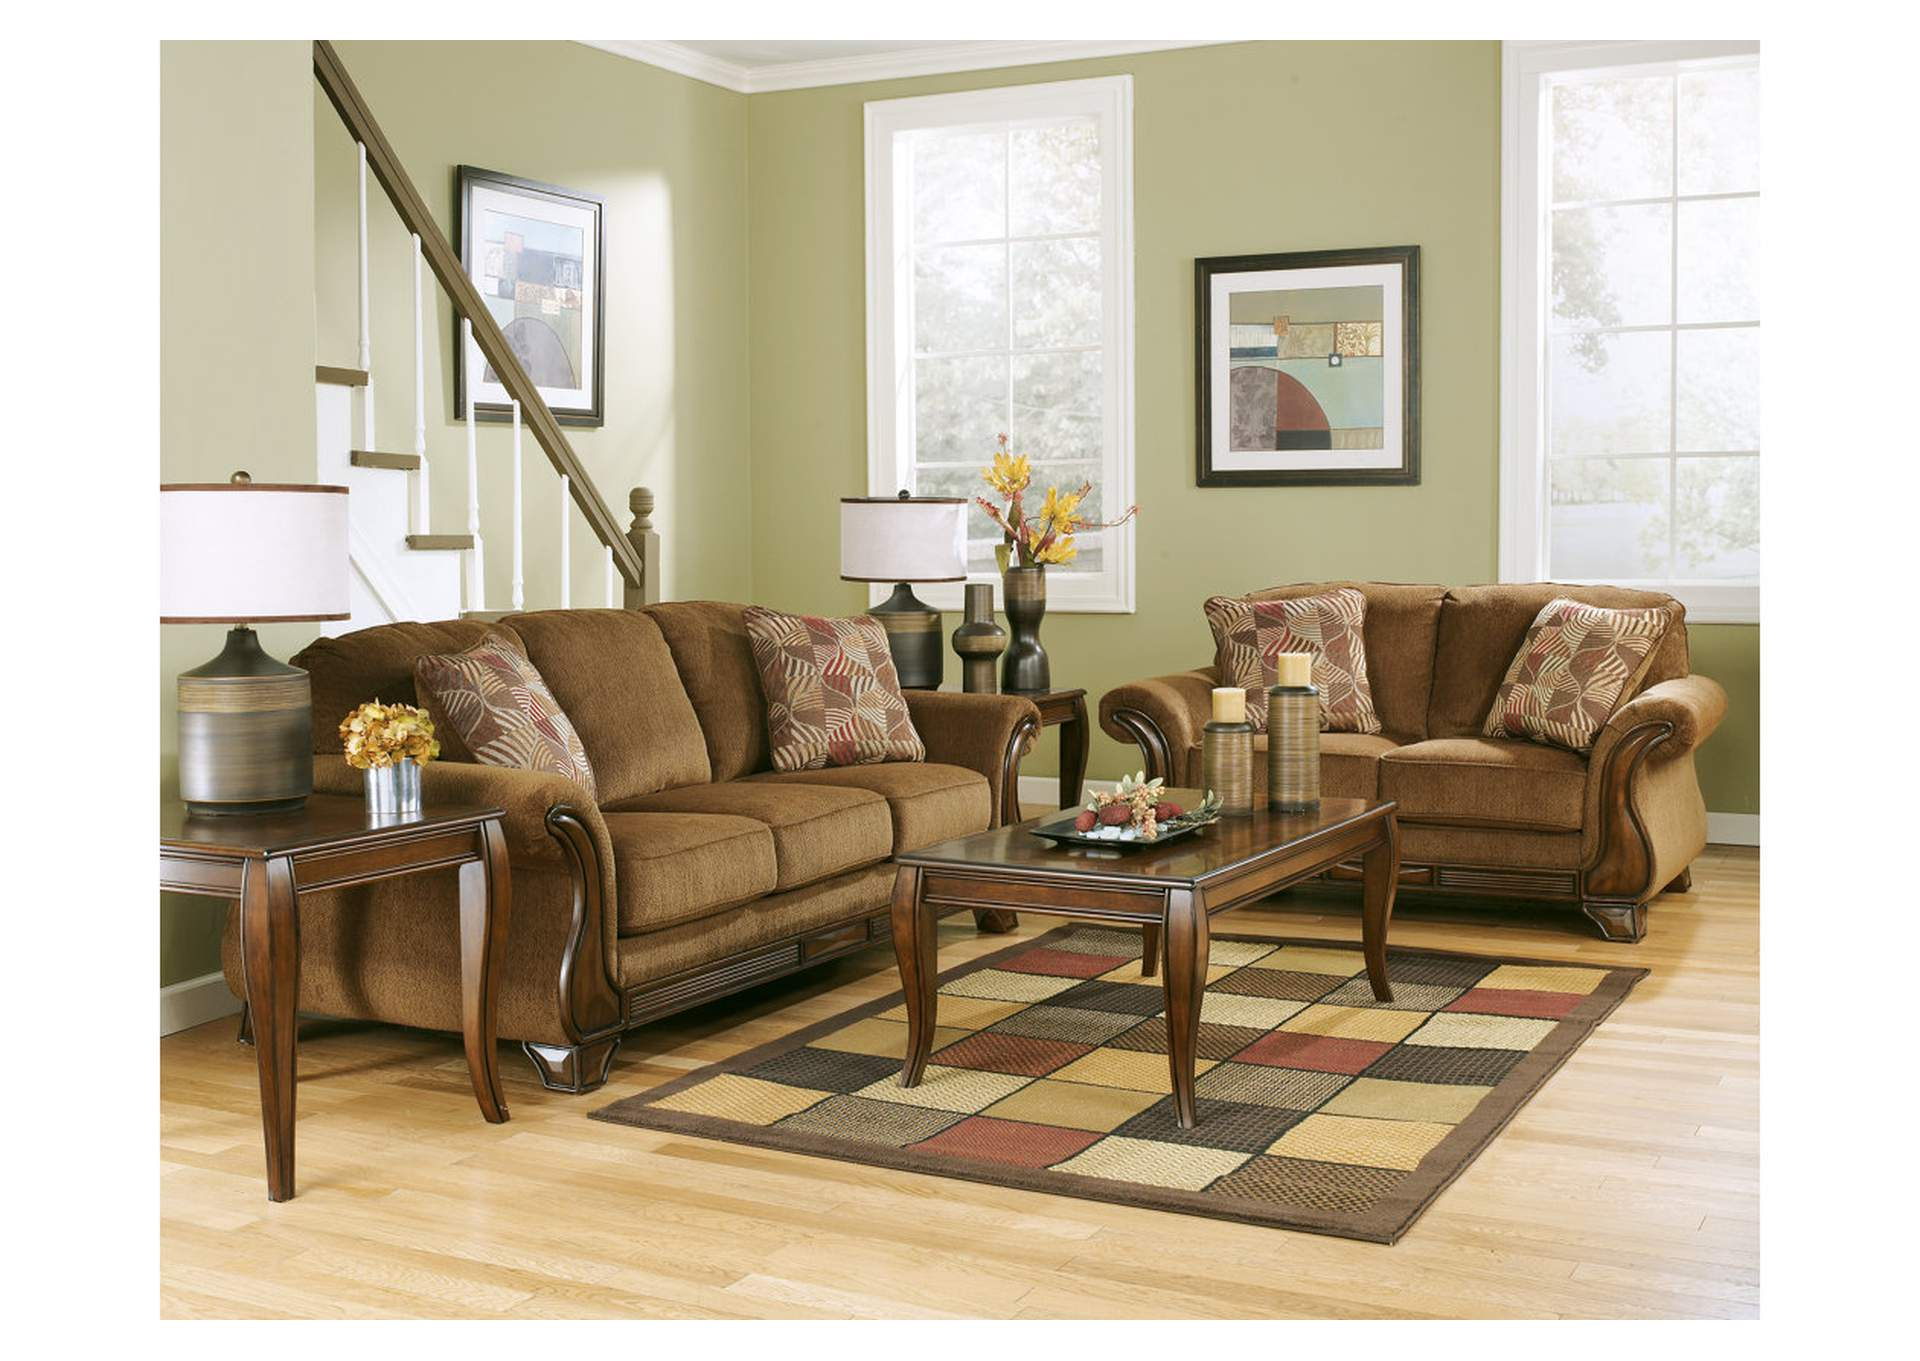 Montgomery Mocha Sofa & Loveseat,Signature Design by Ashley